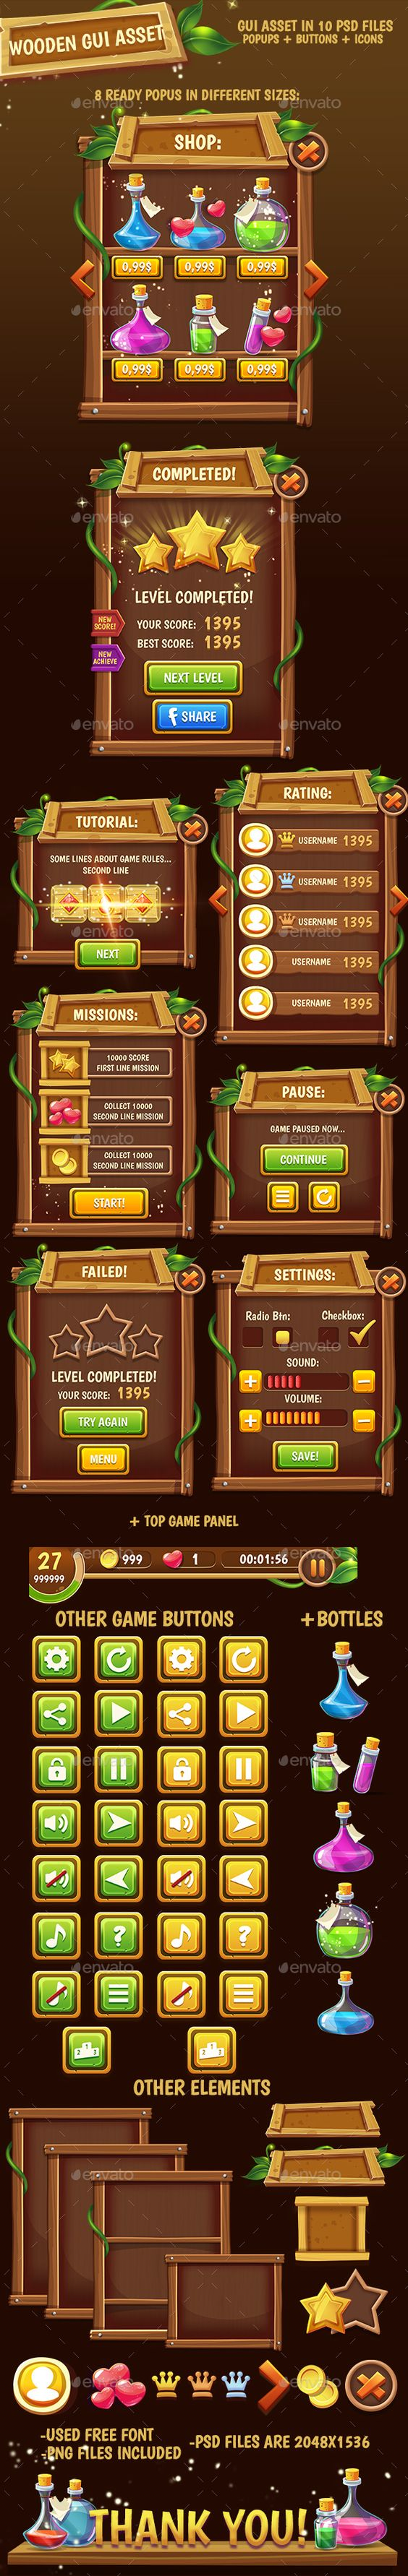 Fantasy Wooded Game Interface